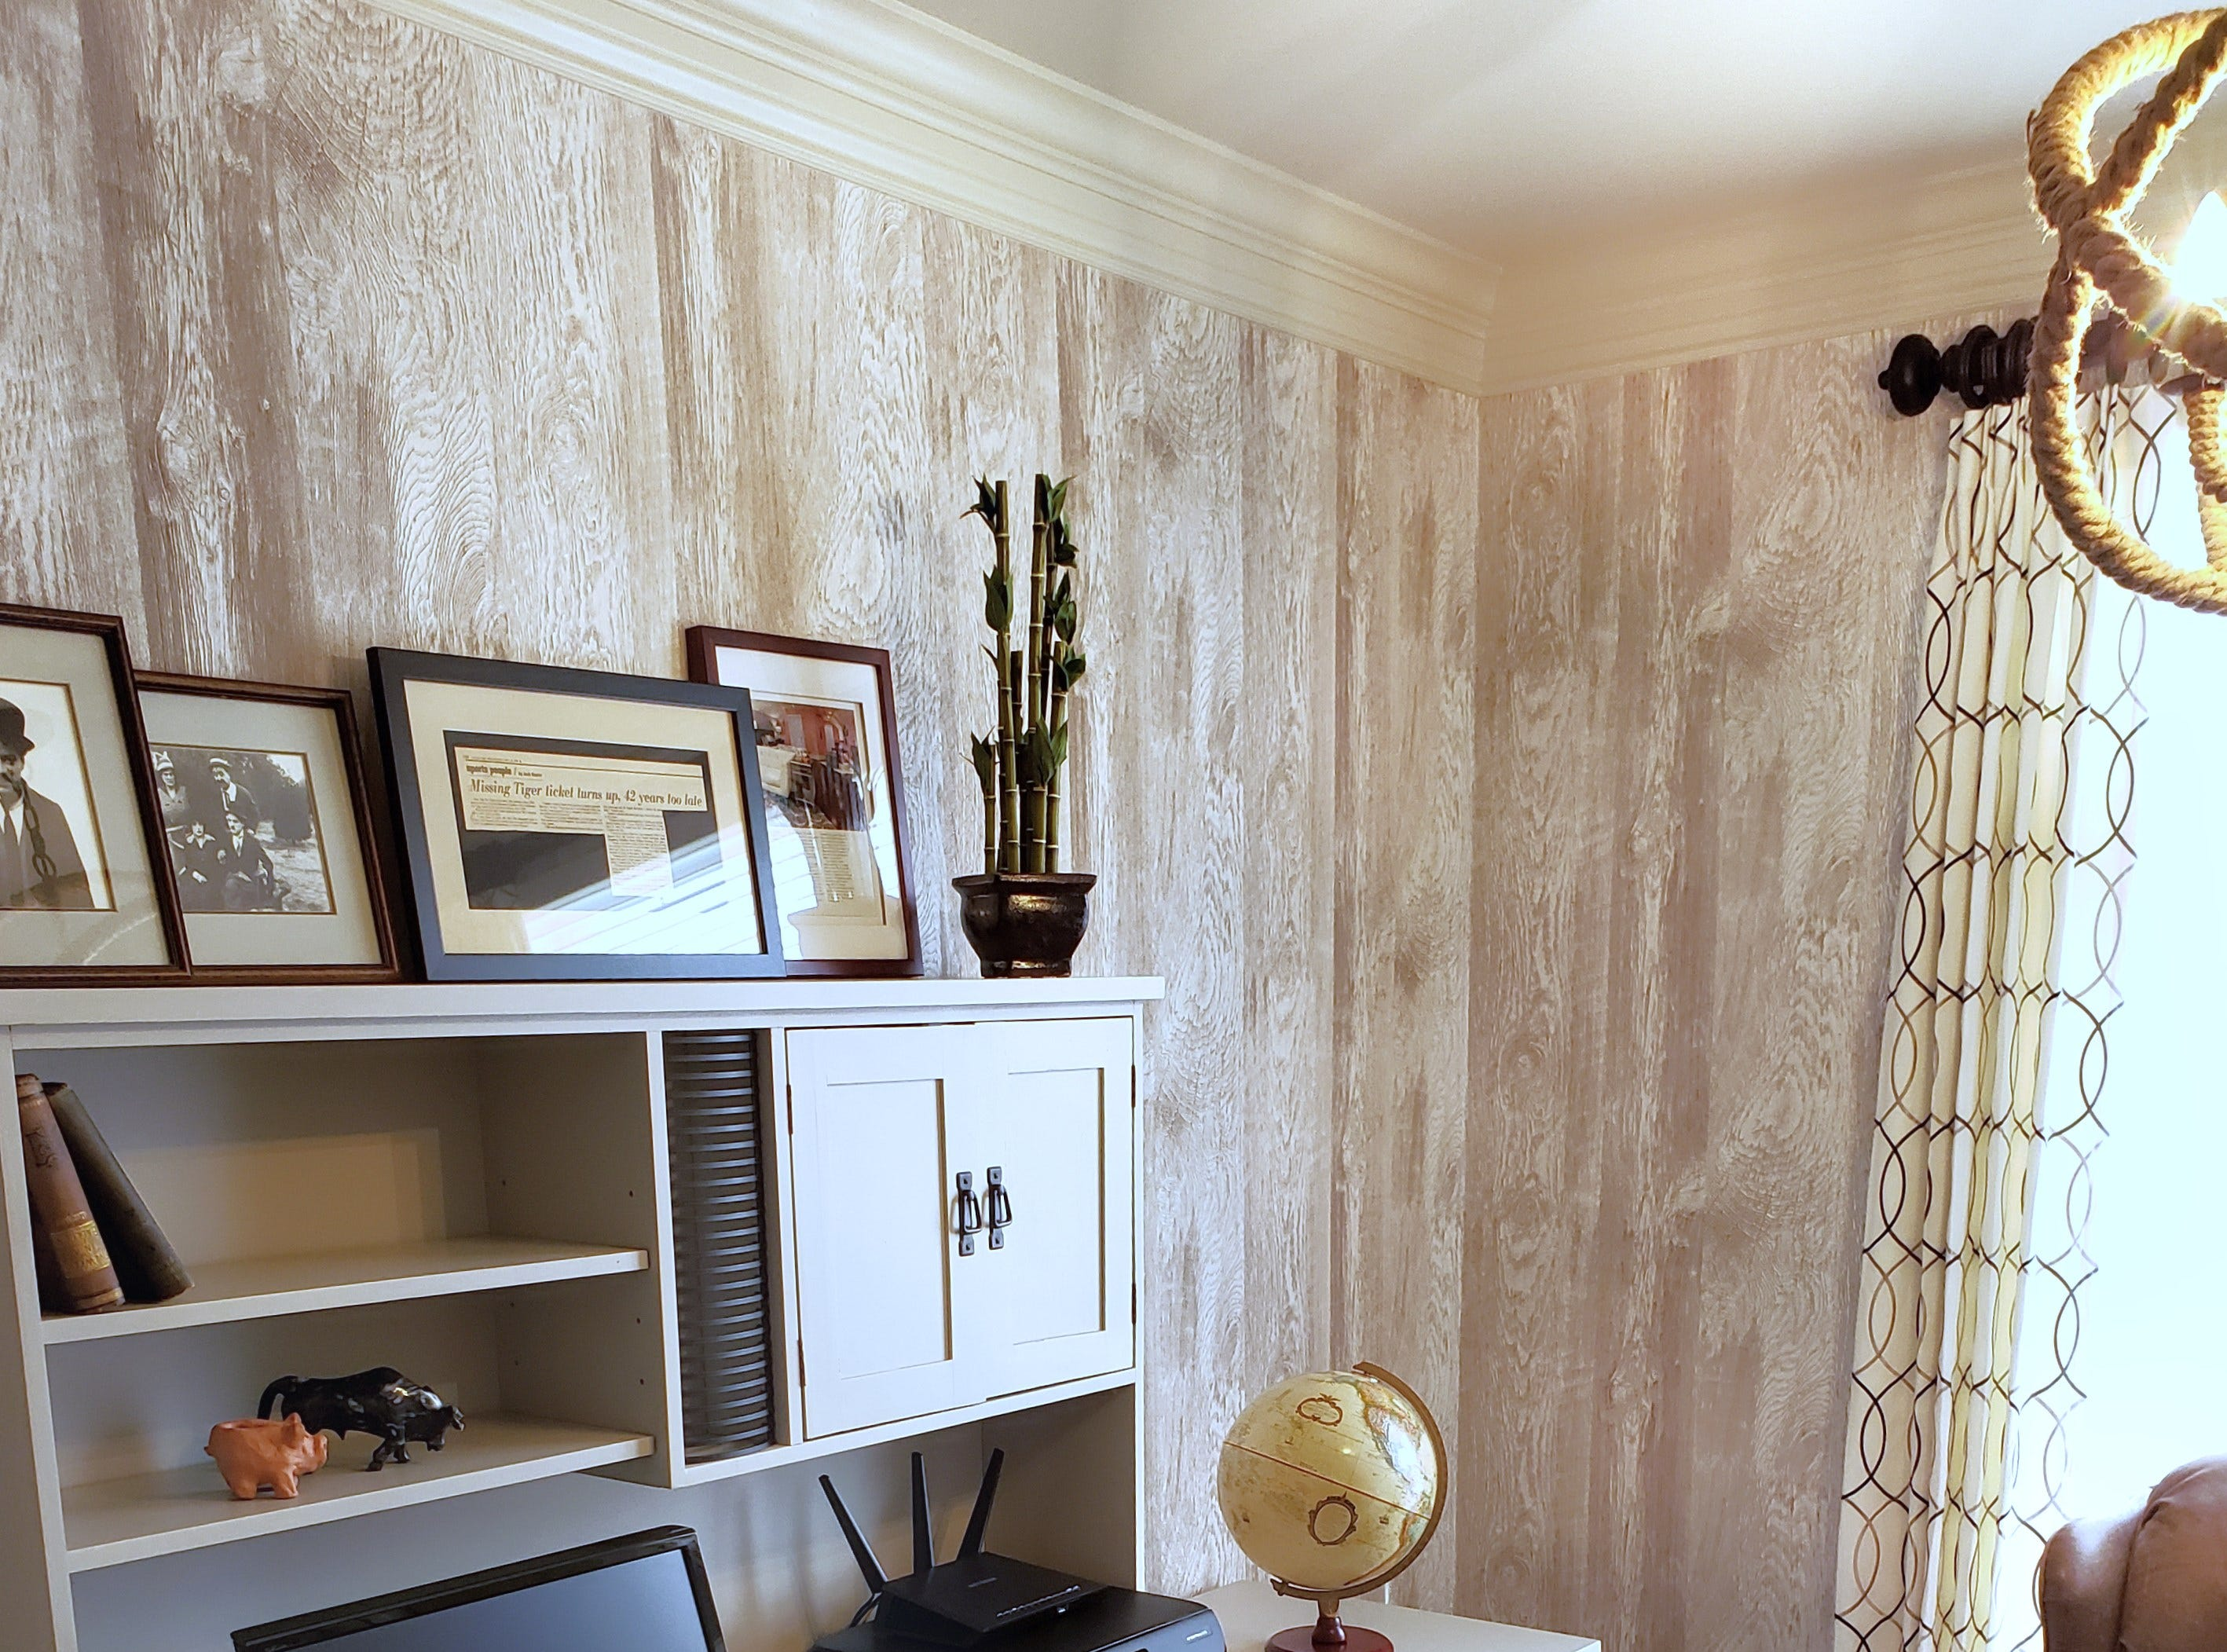 An extensive remodel may not be needed when a makeover will do. That was the case for Patricia Warner's home office that got some fresh updates, including new draperies and wallpaper with a faux rustic barn wood finish. Painting the office furniture gave the space a brighter feel.